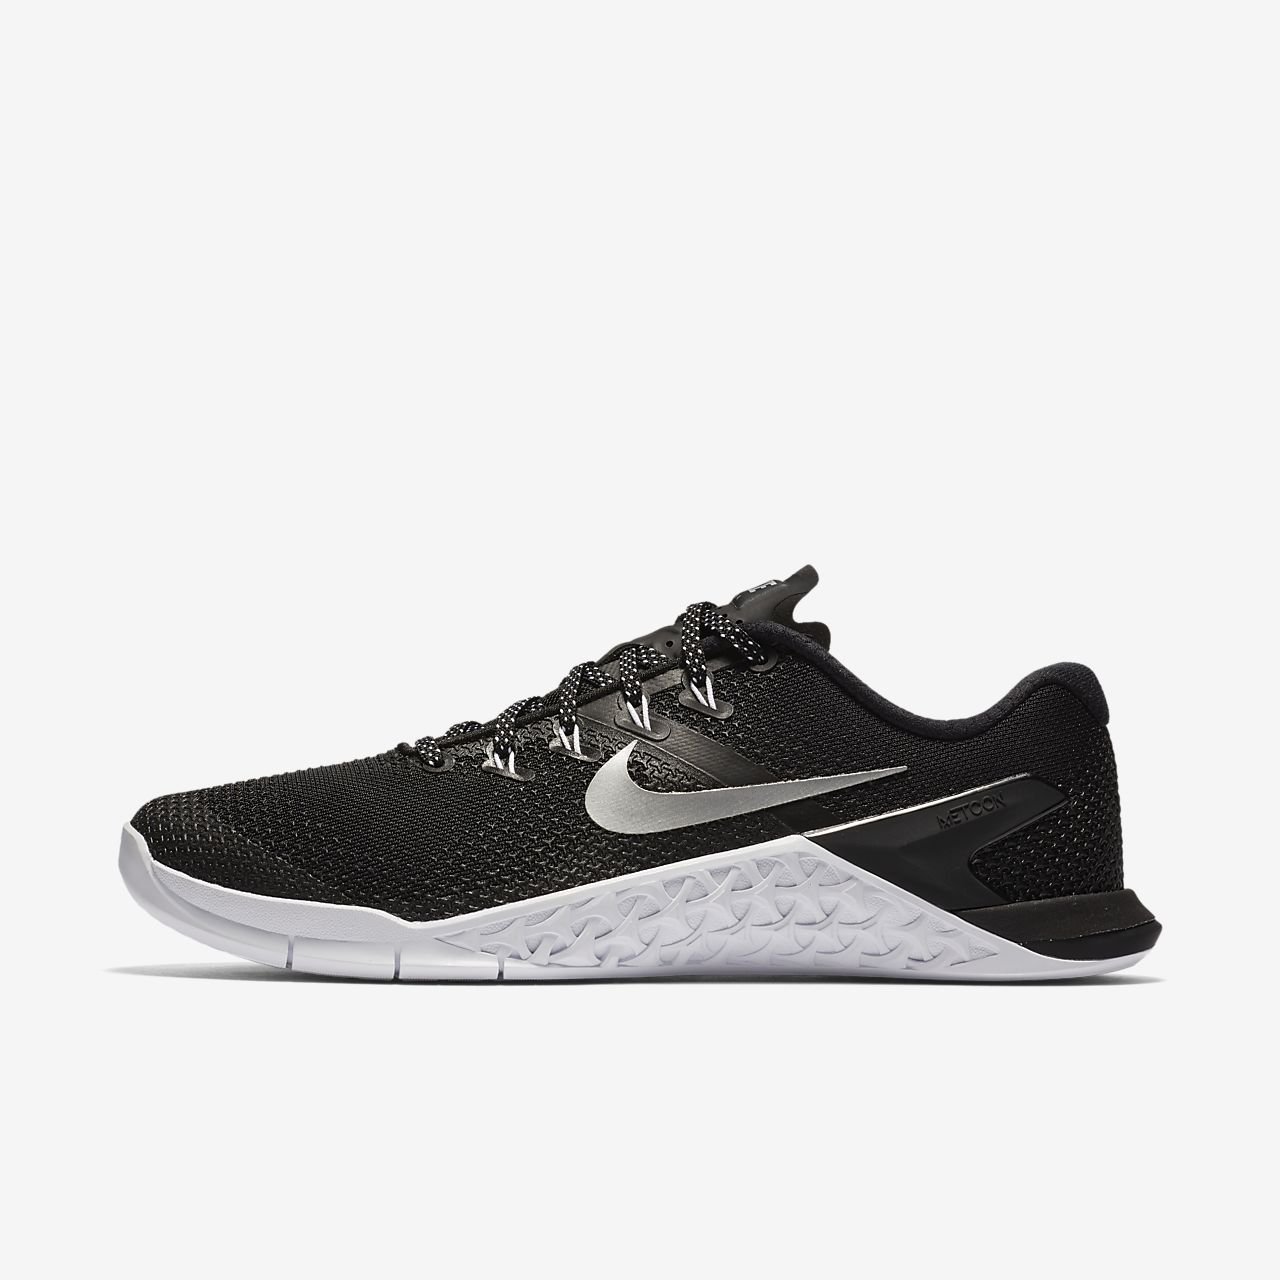 separation shoes 4d999 97b14 ... Nike Metcon 4 Cross-Training- und Gewichtheberschuh für Damen